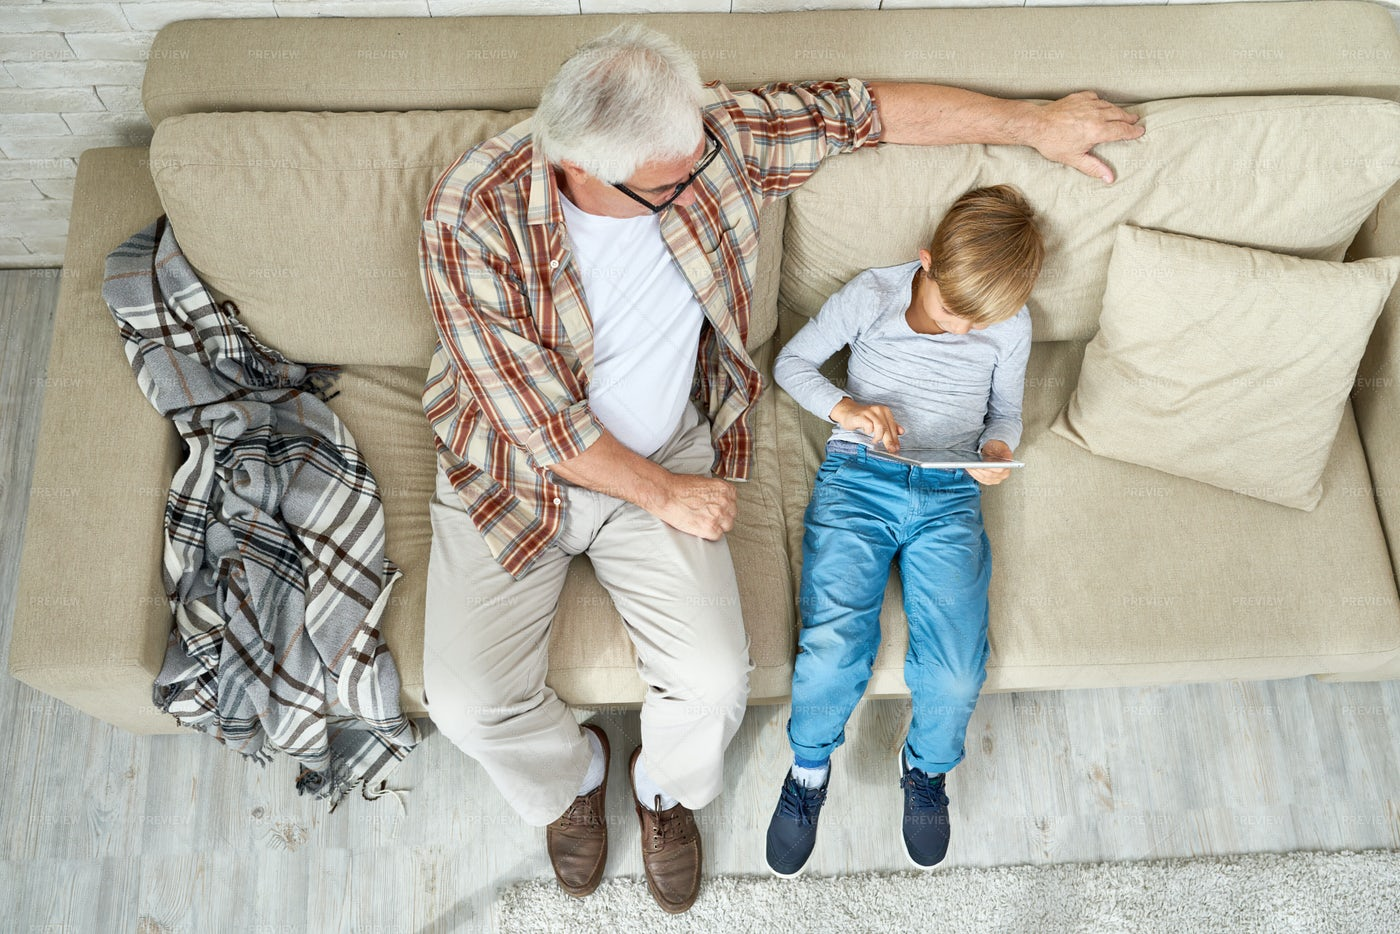 Leisure Time With Grandpa: Stock Photos